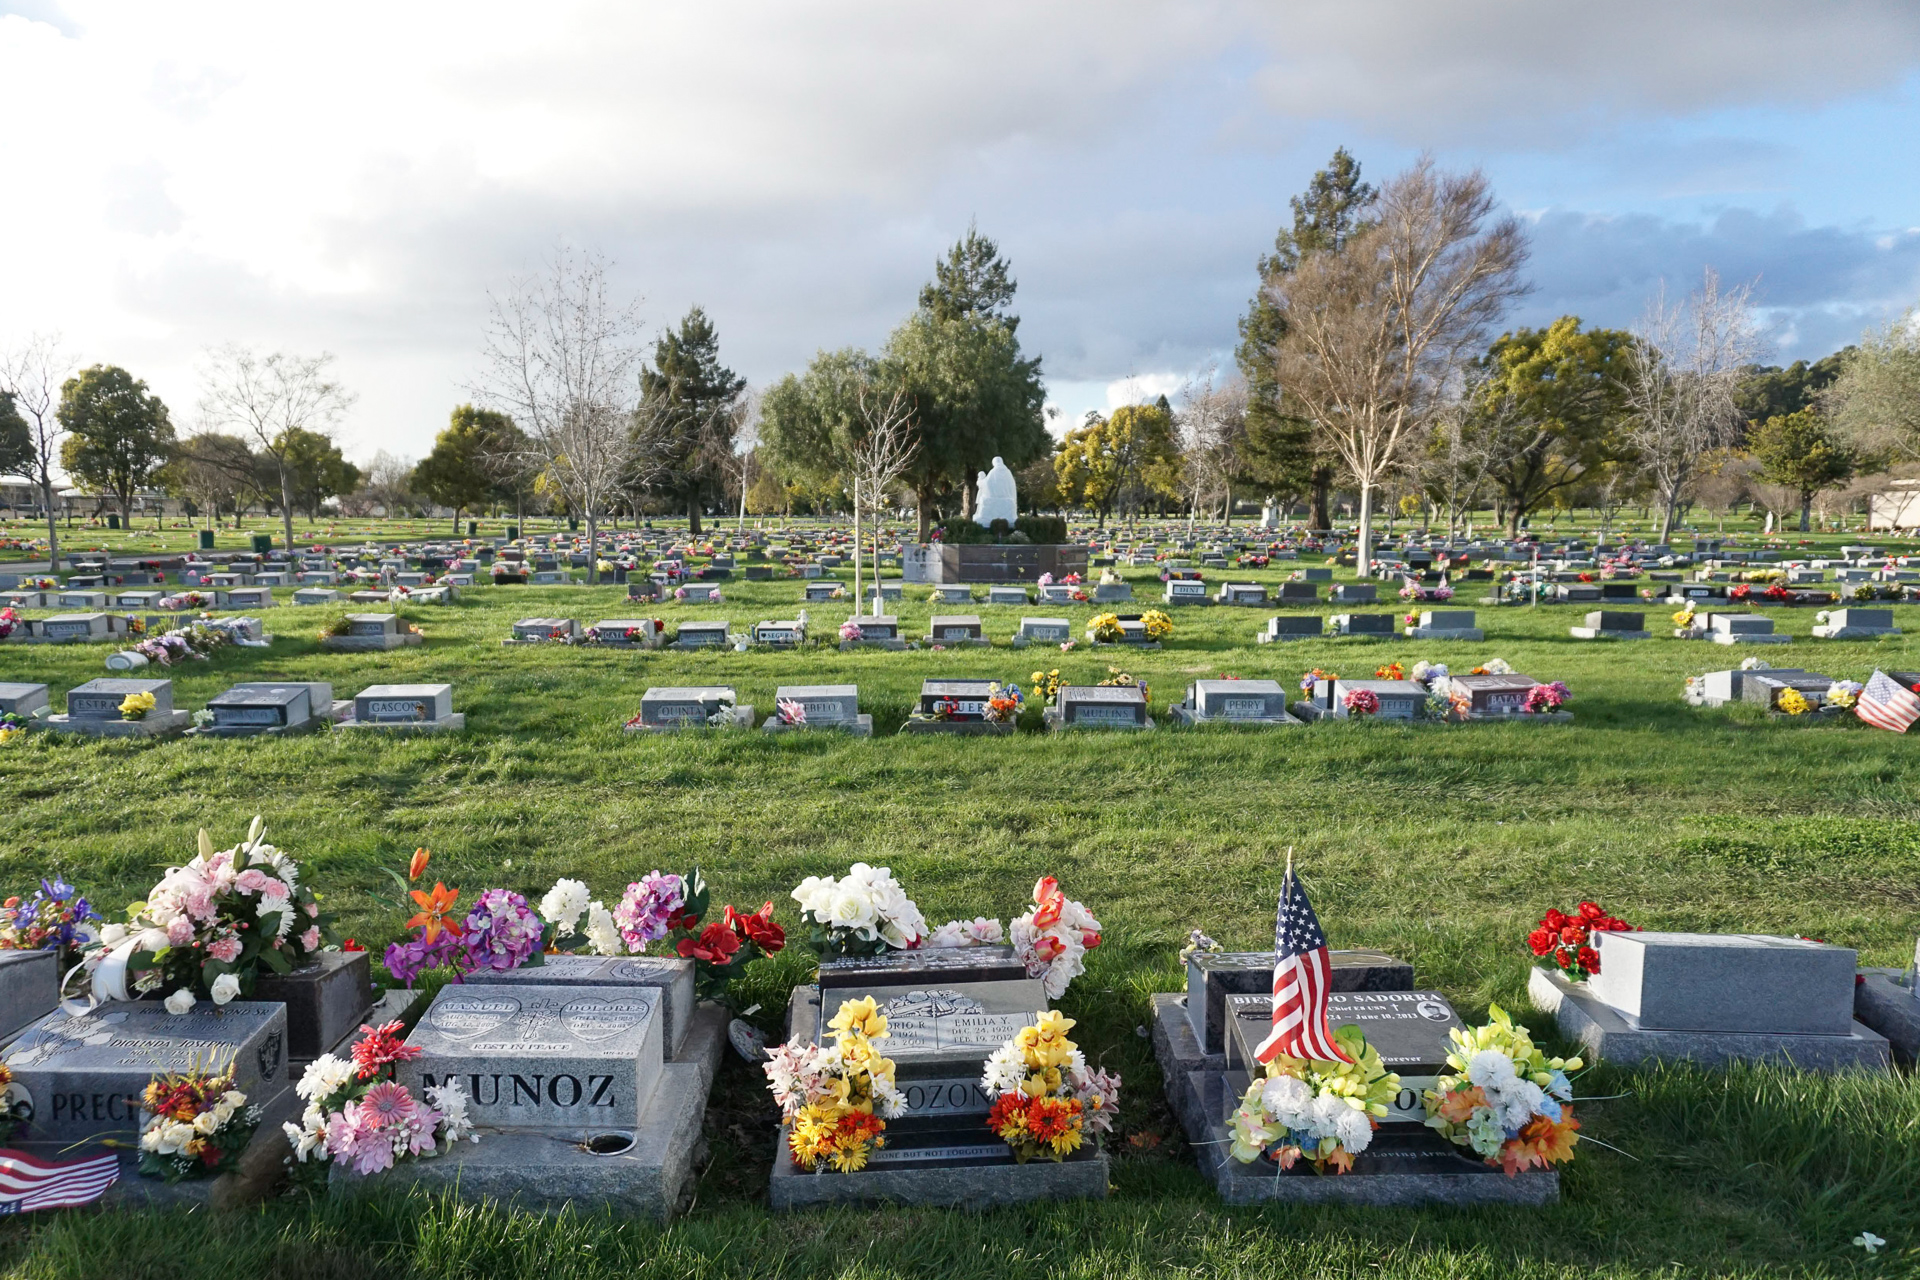 A cemetary breathes life through color, honoring loved ones now passed.